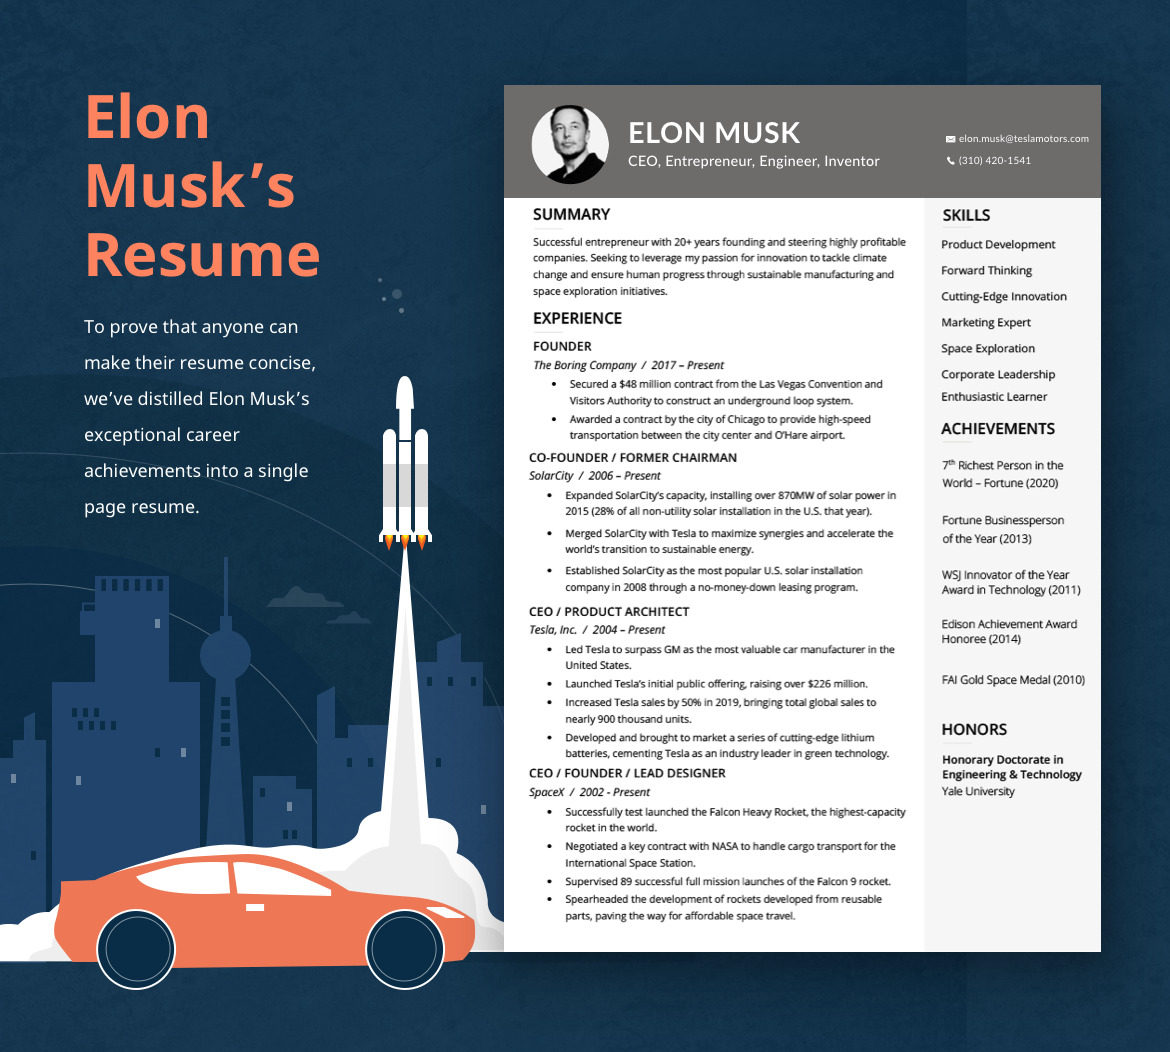 An example of Elon Musk's one page resume